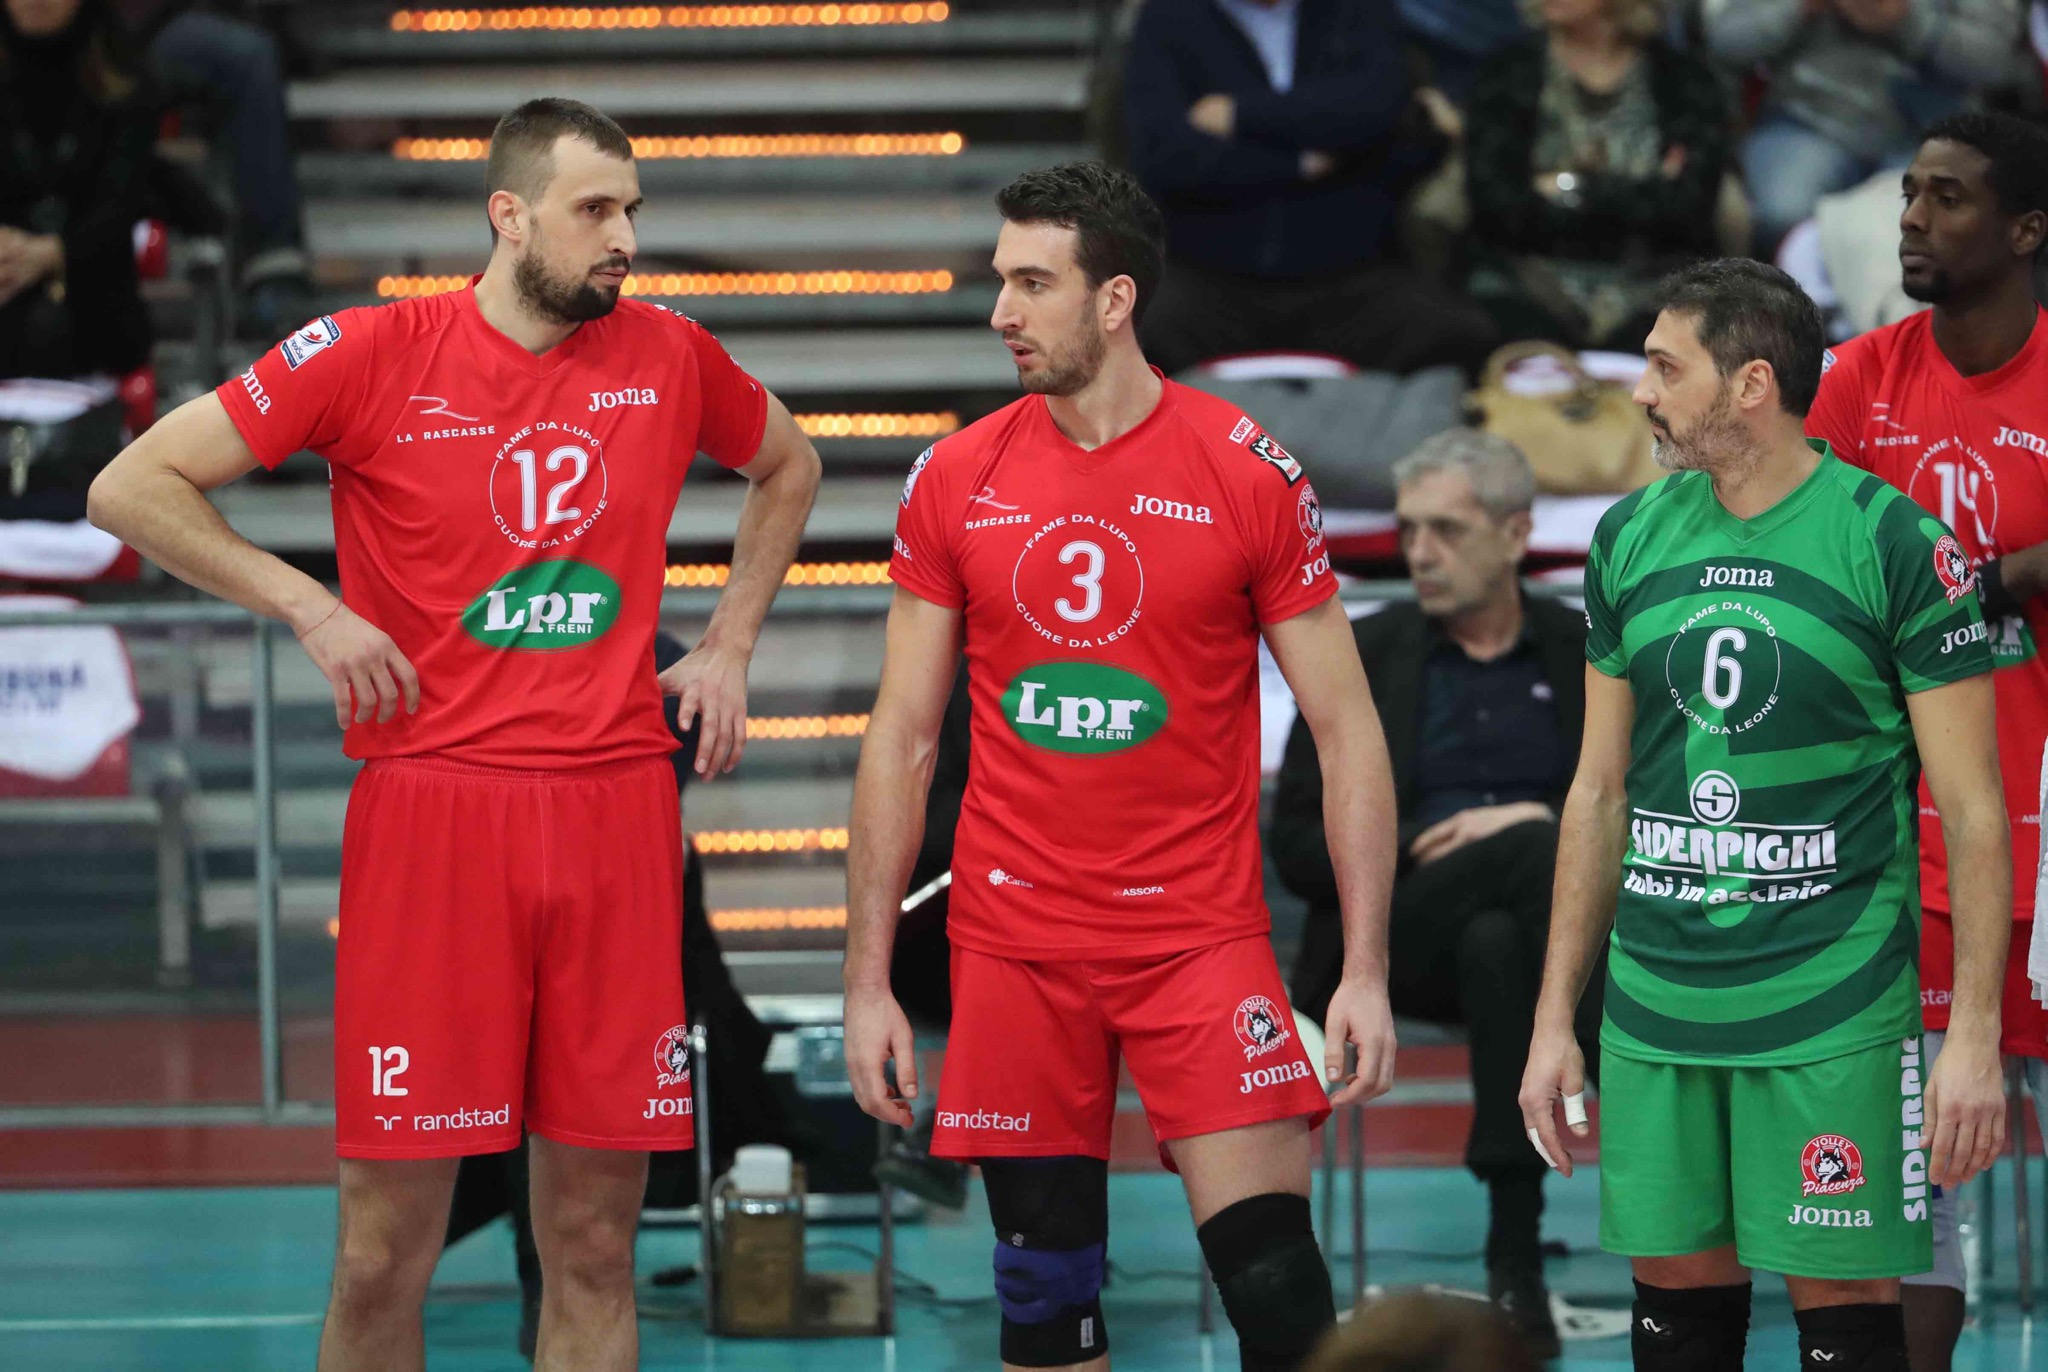 Lpr Volley Piacenza- Gi Group Monza 2-3. FOTOGALLERY